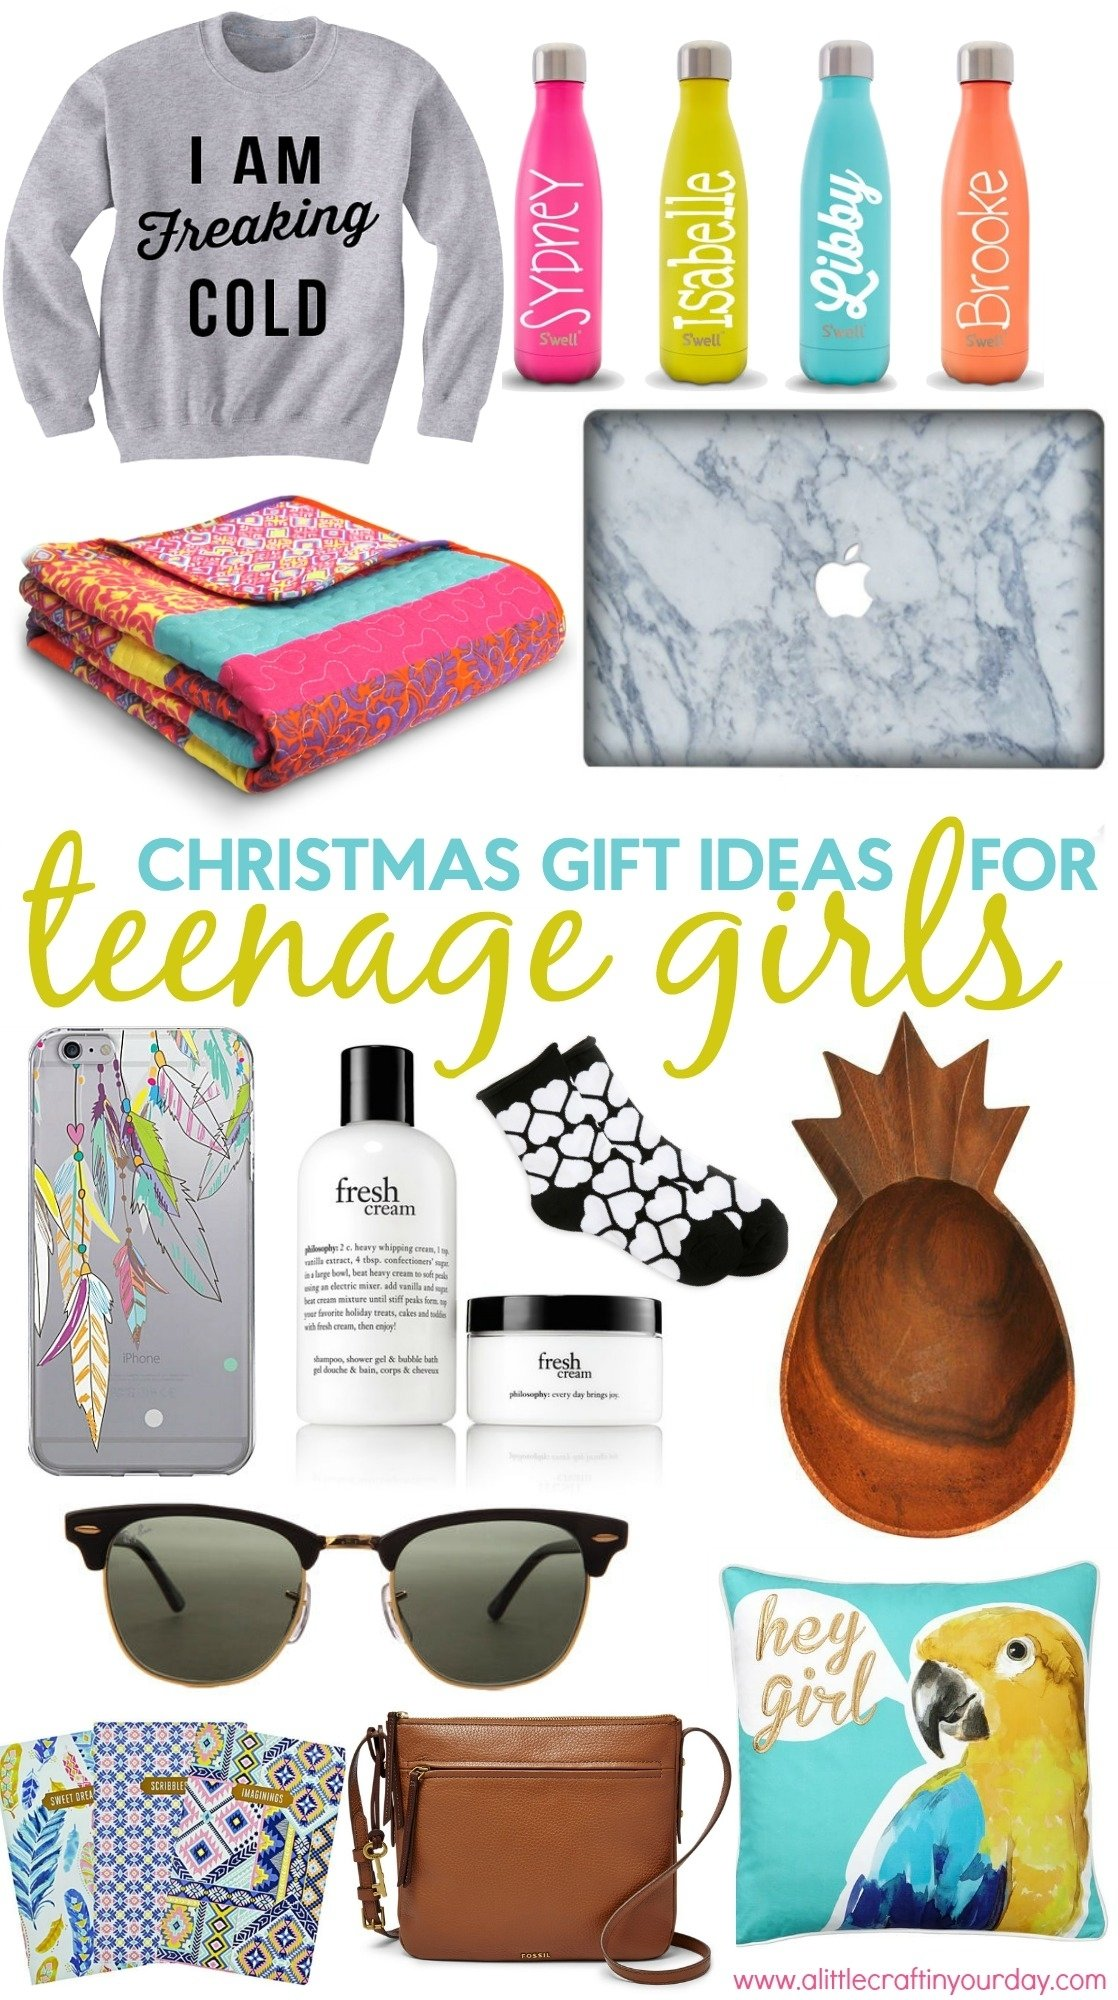 10 Great Christmas Ideas For Teenage Girls christmas gift ideas for teen girls a little craft in your day 11 2020